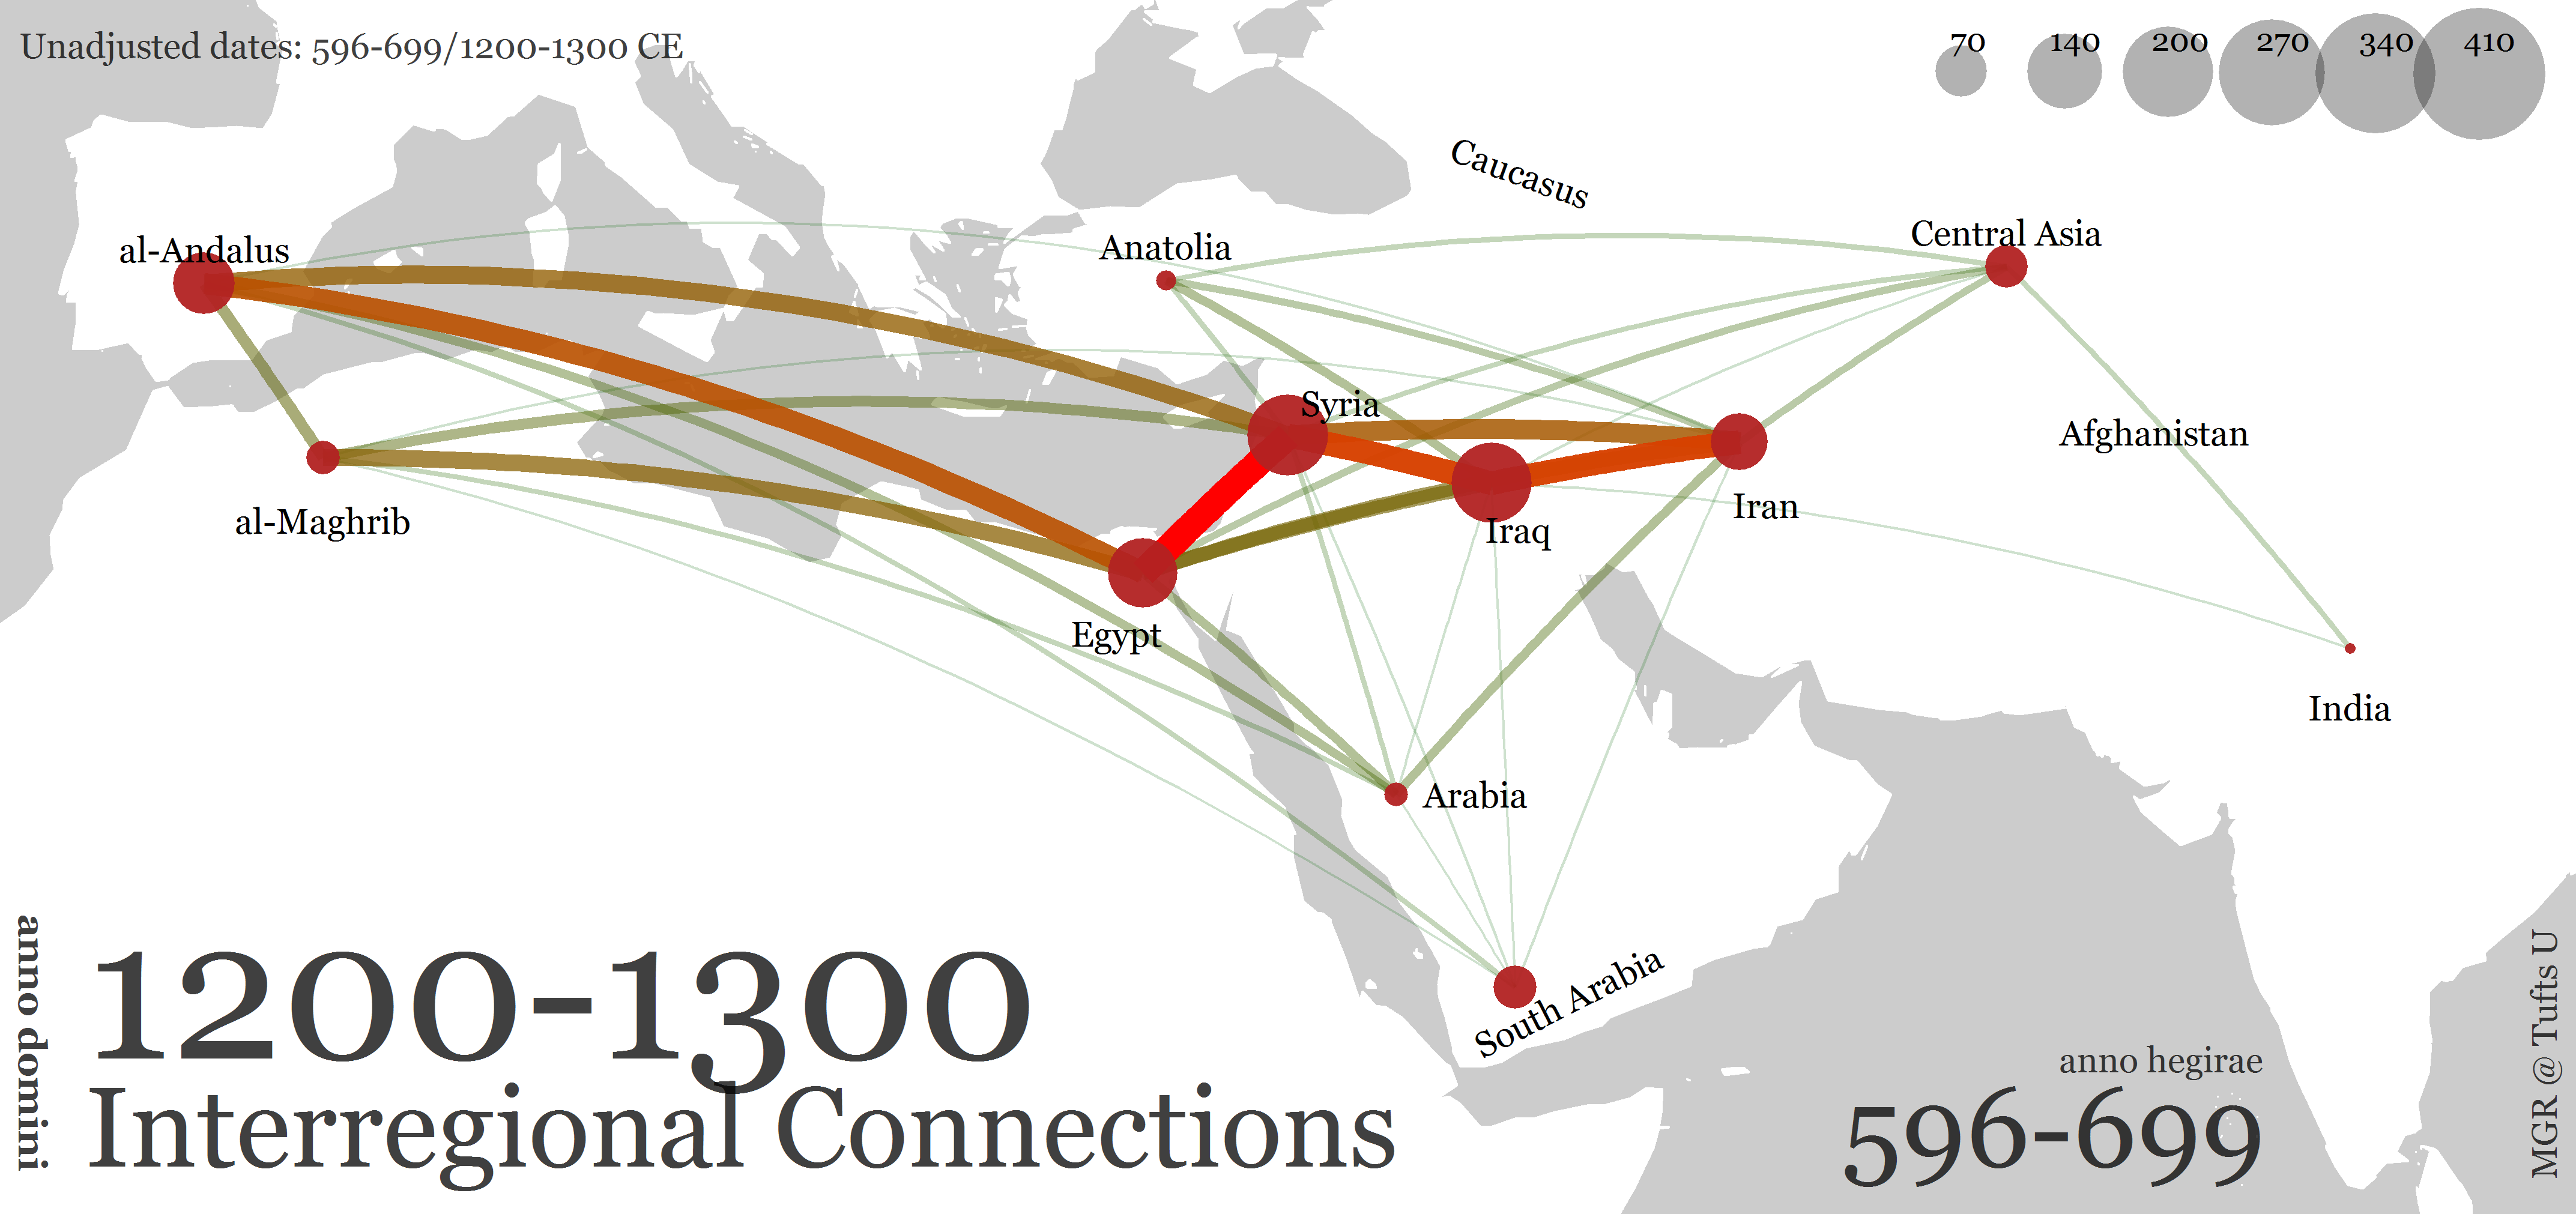 Figure 11. Massive migrations of the 13th century CE.